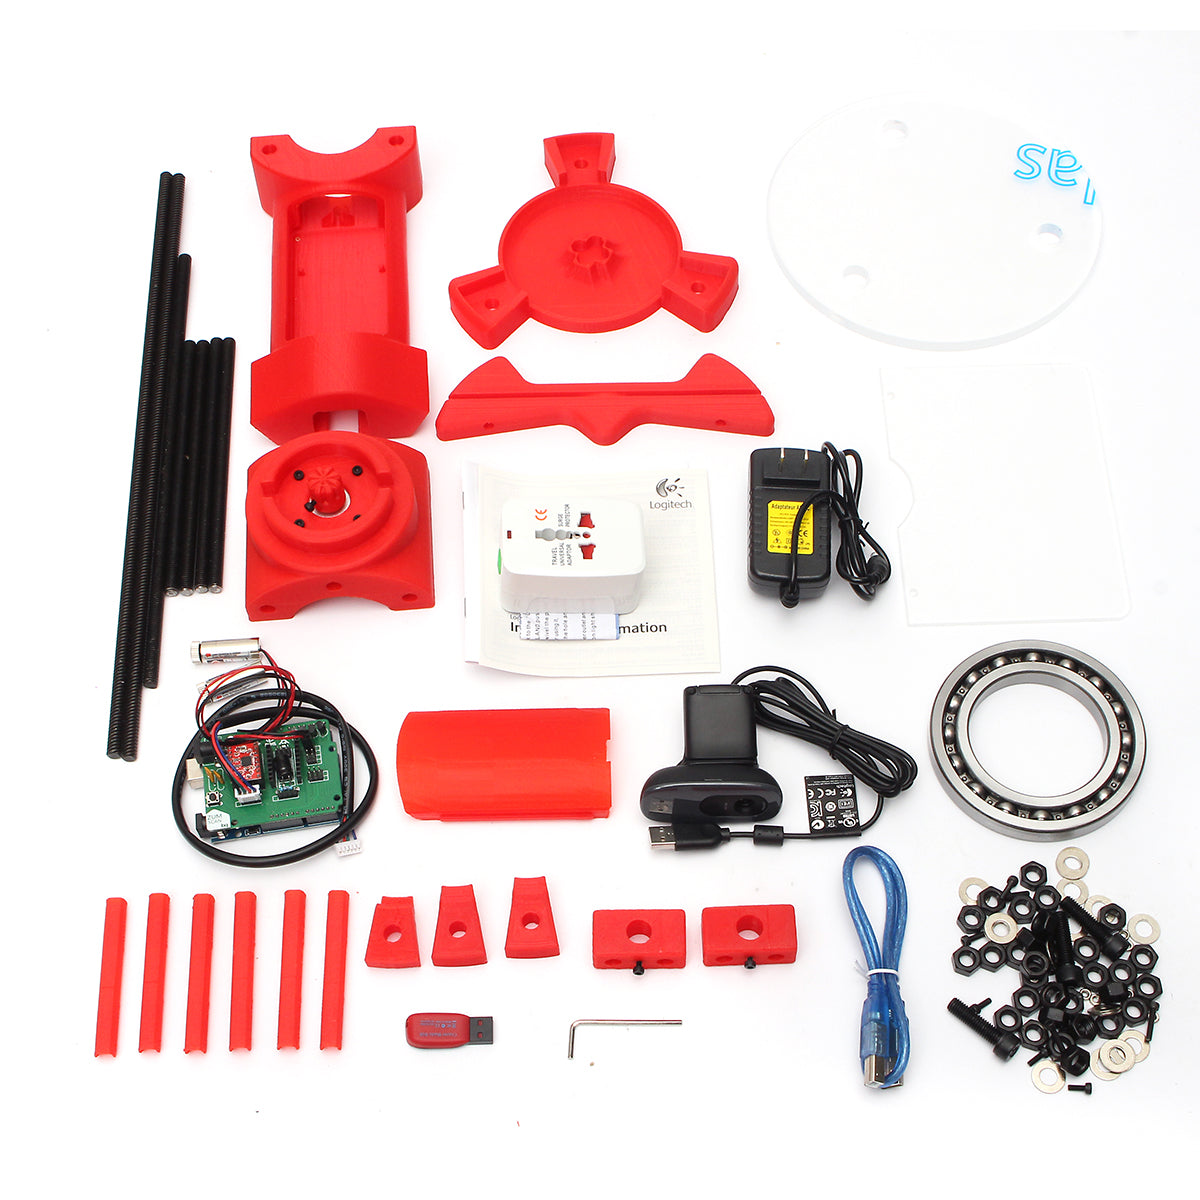 Red DIY 3D Scanner Adapter Plate For Ciclop 3D Printer